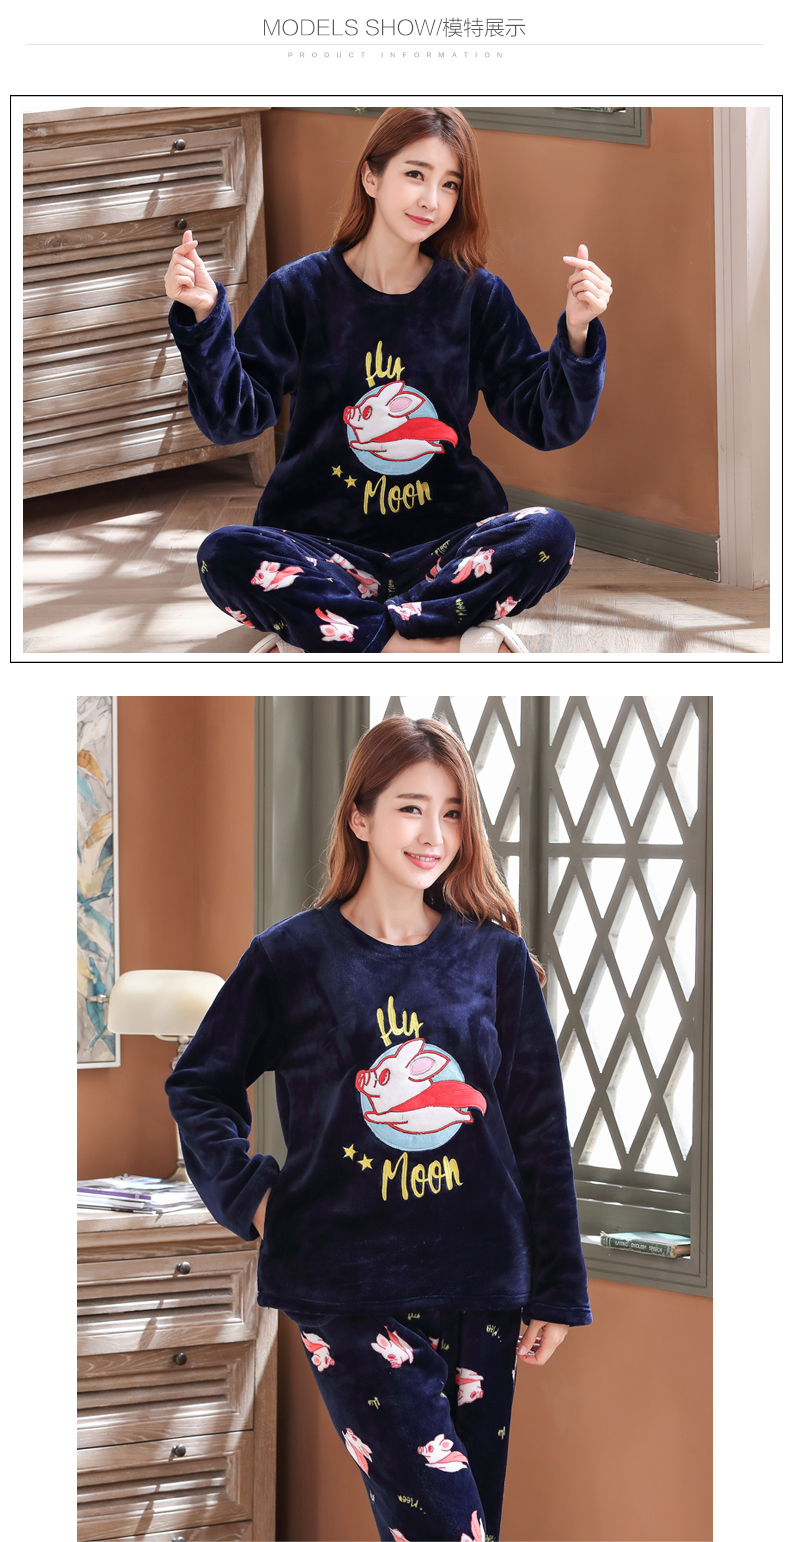 Long Sleeve Warm Flannel Pajamas Winter Women Pajama Sets Print Thicken Sleepwear Pyjamas Plus Size 3XL 4XL 5XL 85kg Nightwear 377